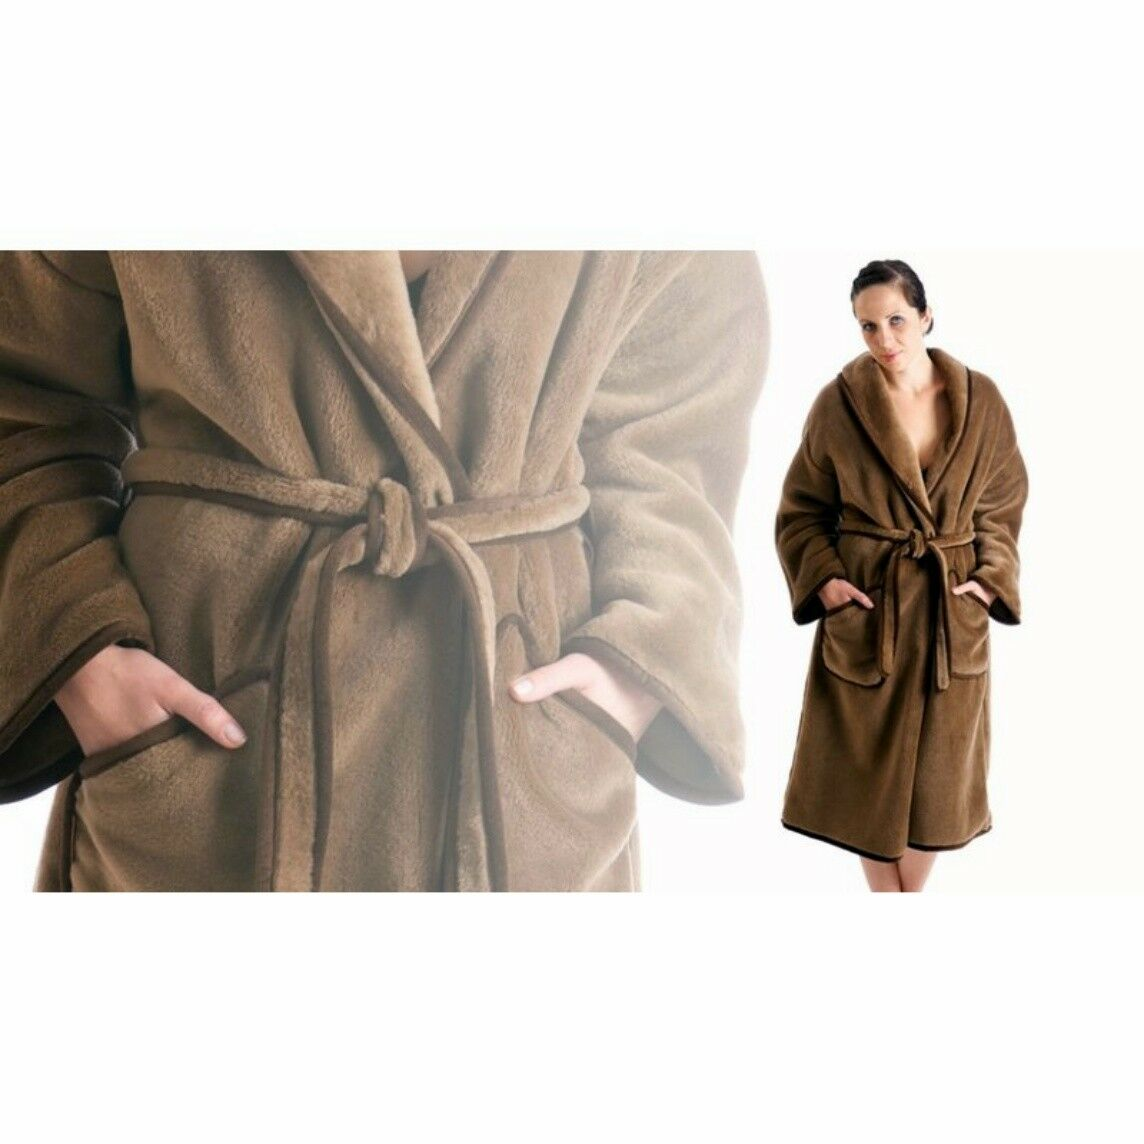 Robe from Kamelwolle, for Men and Women, Woven, Superwash, SIZE S-XXXL